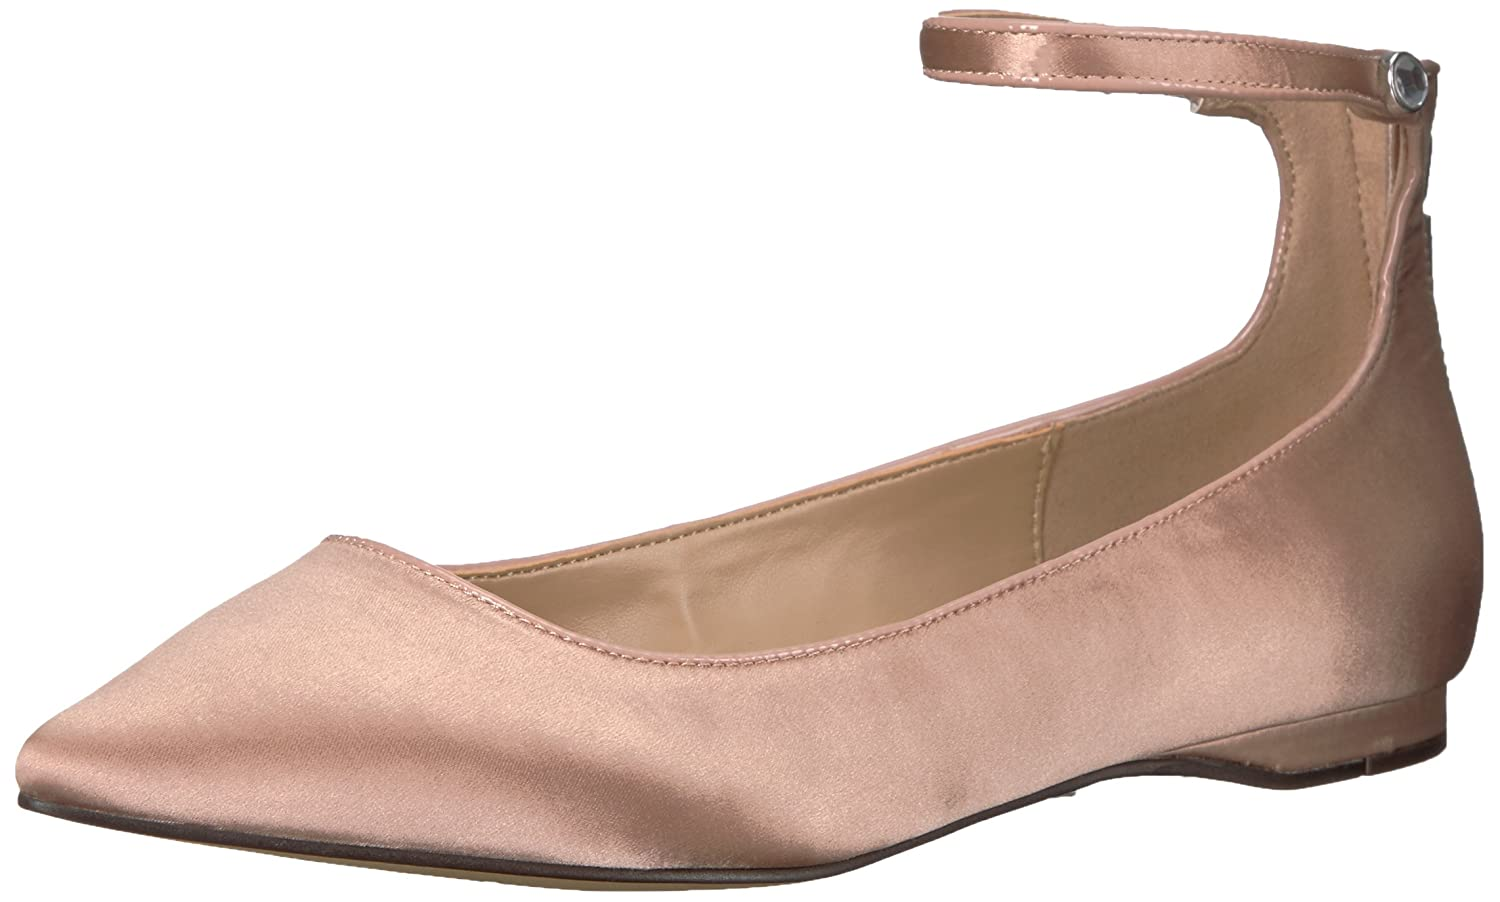 The Fix Women's Evie Military Inspired Ankle Strap Pointed Toe Flat